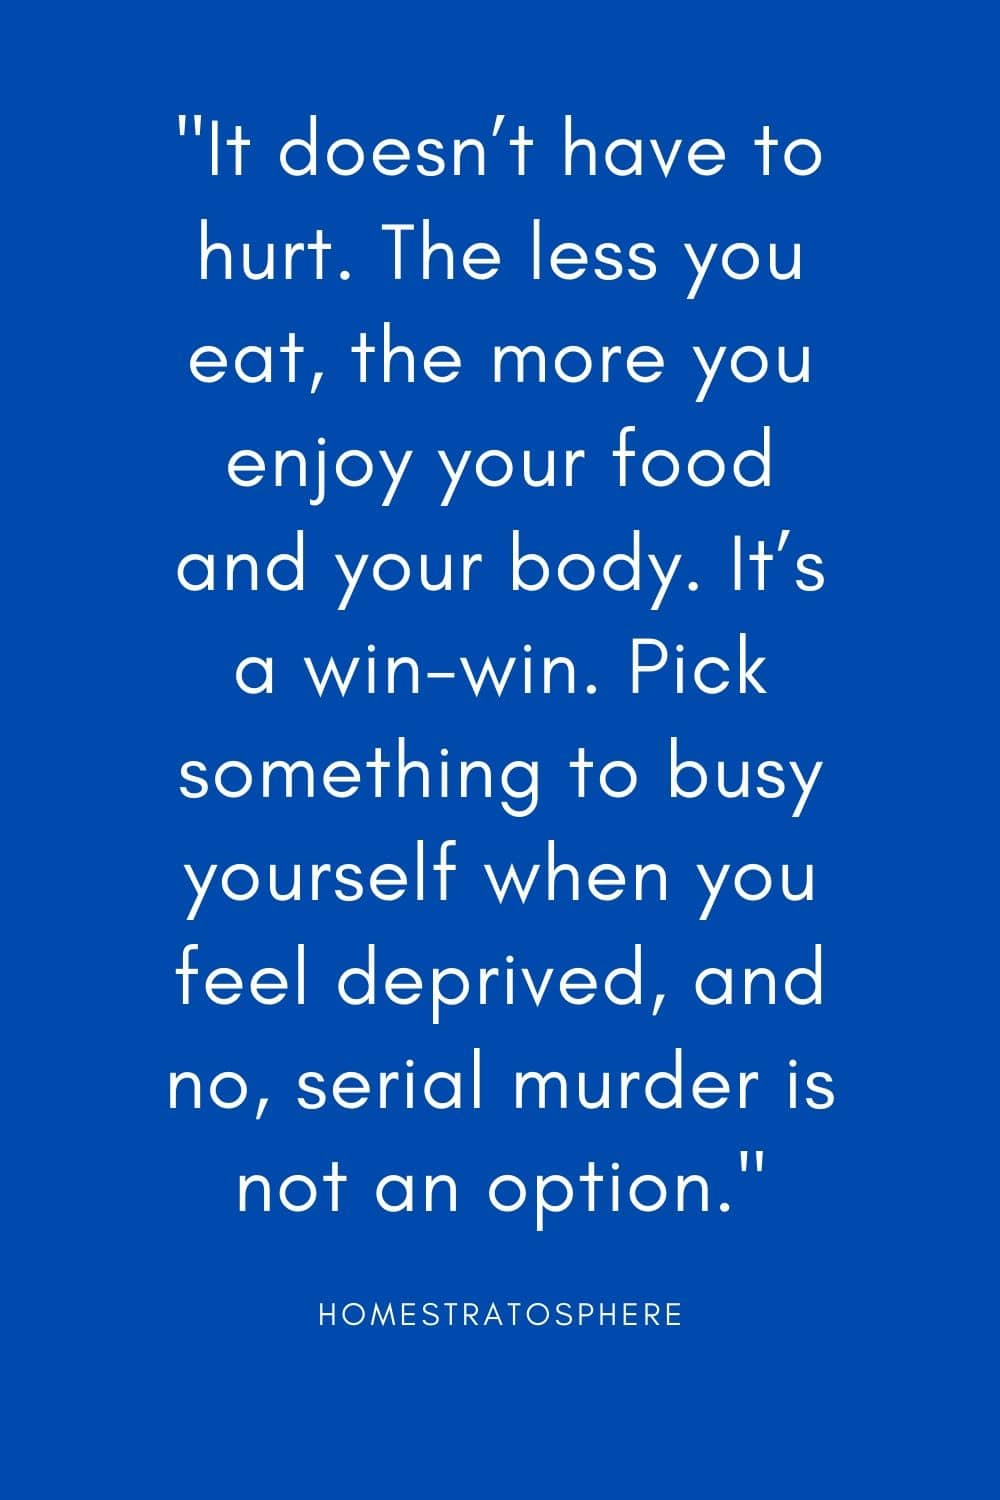 """It doesn't have to hurt. The less you eat, the more you enjoy your food and your body. It's a win-win. Pick something to busy yourself when you feel deprived, and no, serial murder is not an option."""